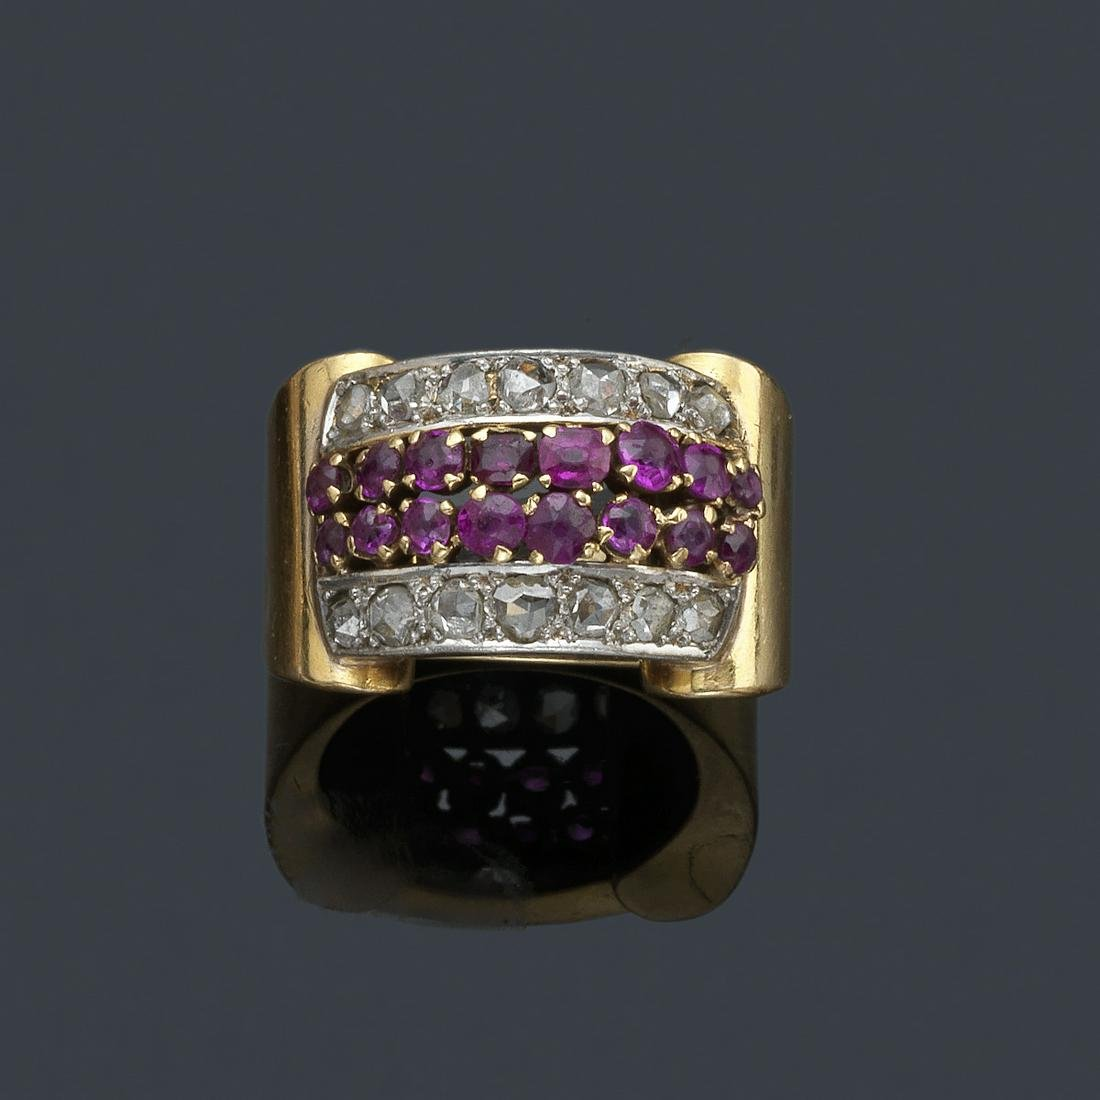 Retro ring with with double central band of rubies